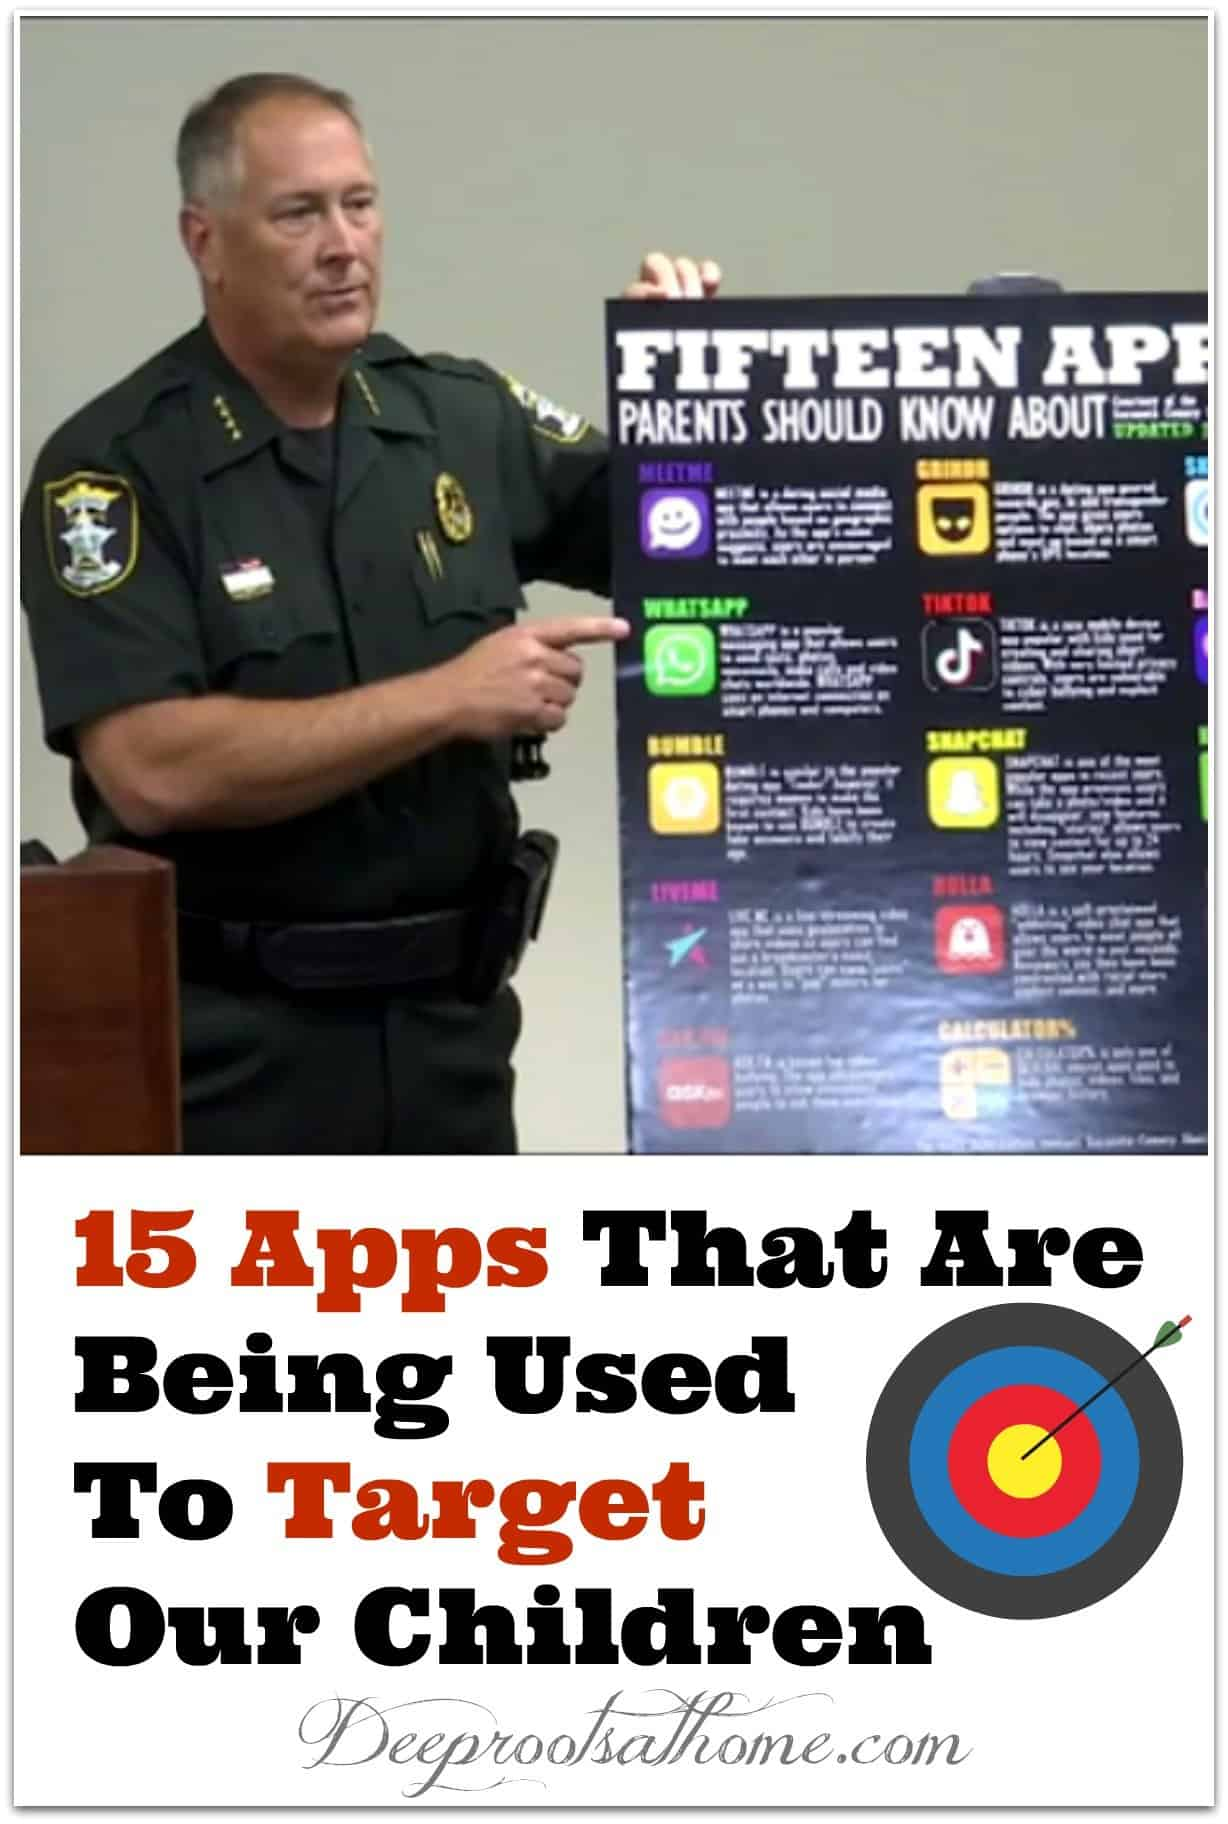 15 Apps That Are Being Used To Target Our Children. sheriff pointing